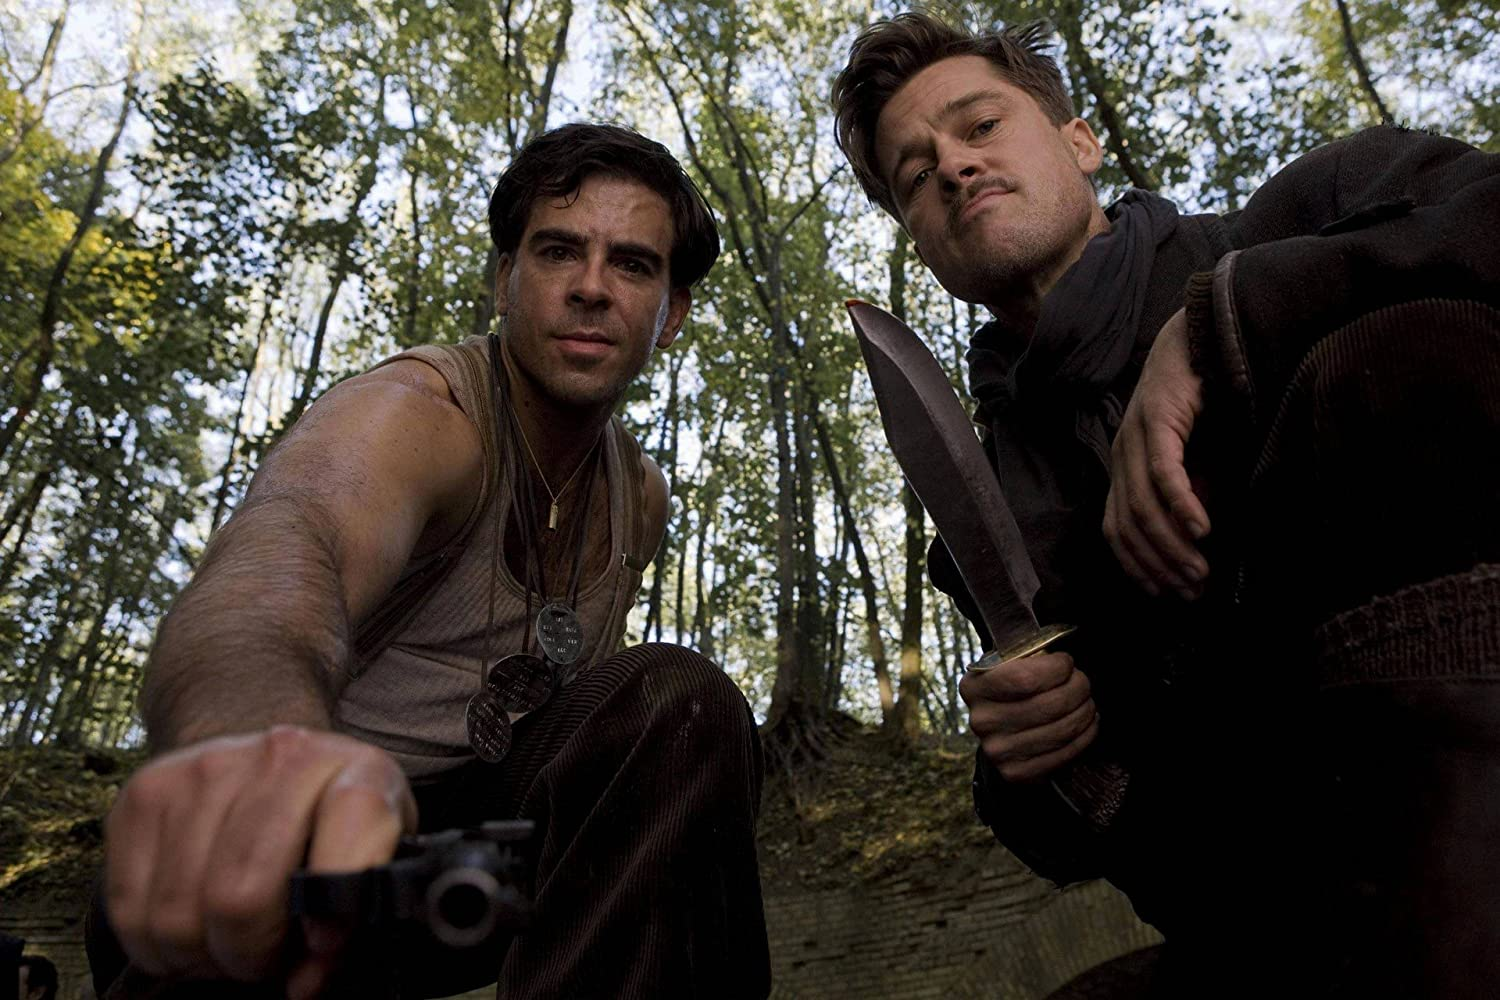 Brad Pitt and Eli Roth in Inglourious Basterds (2009)